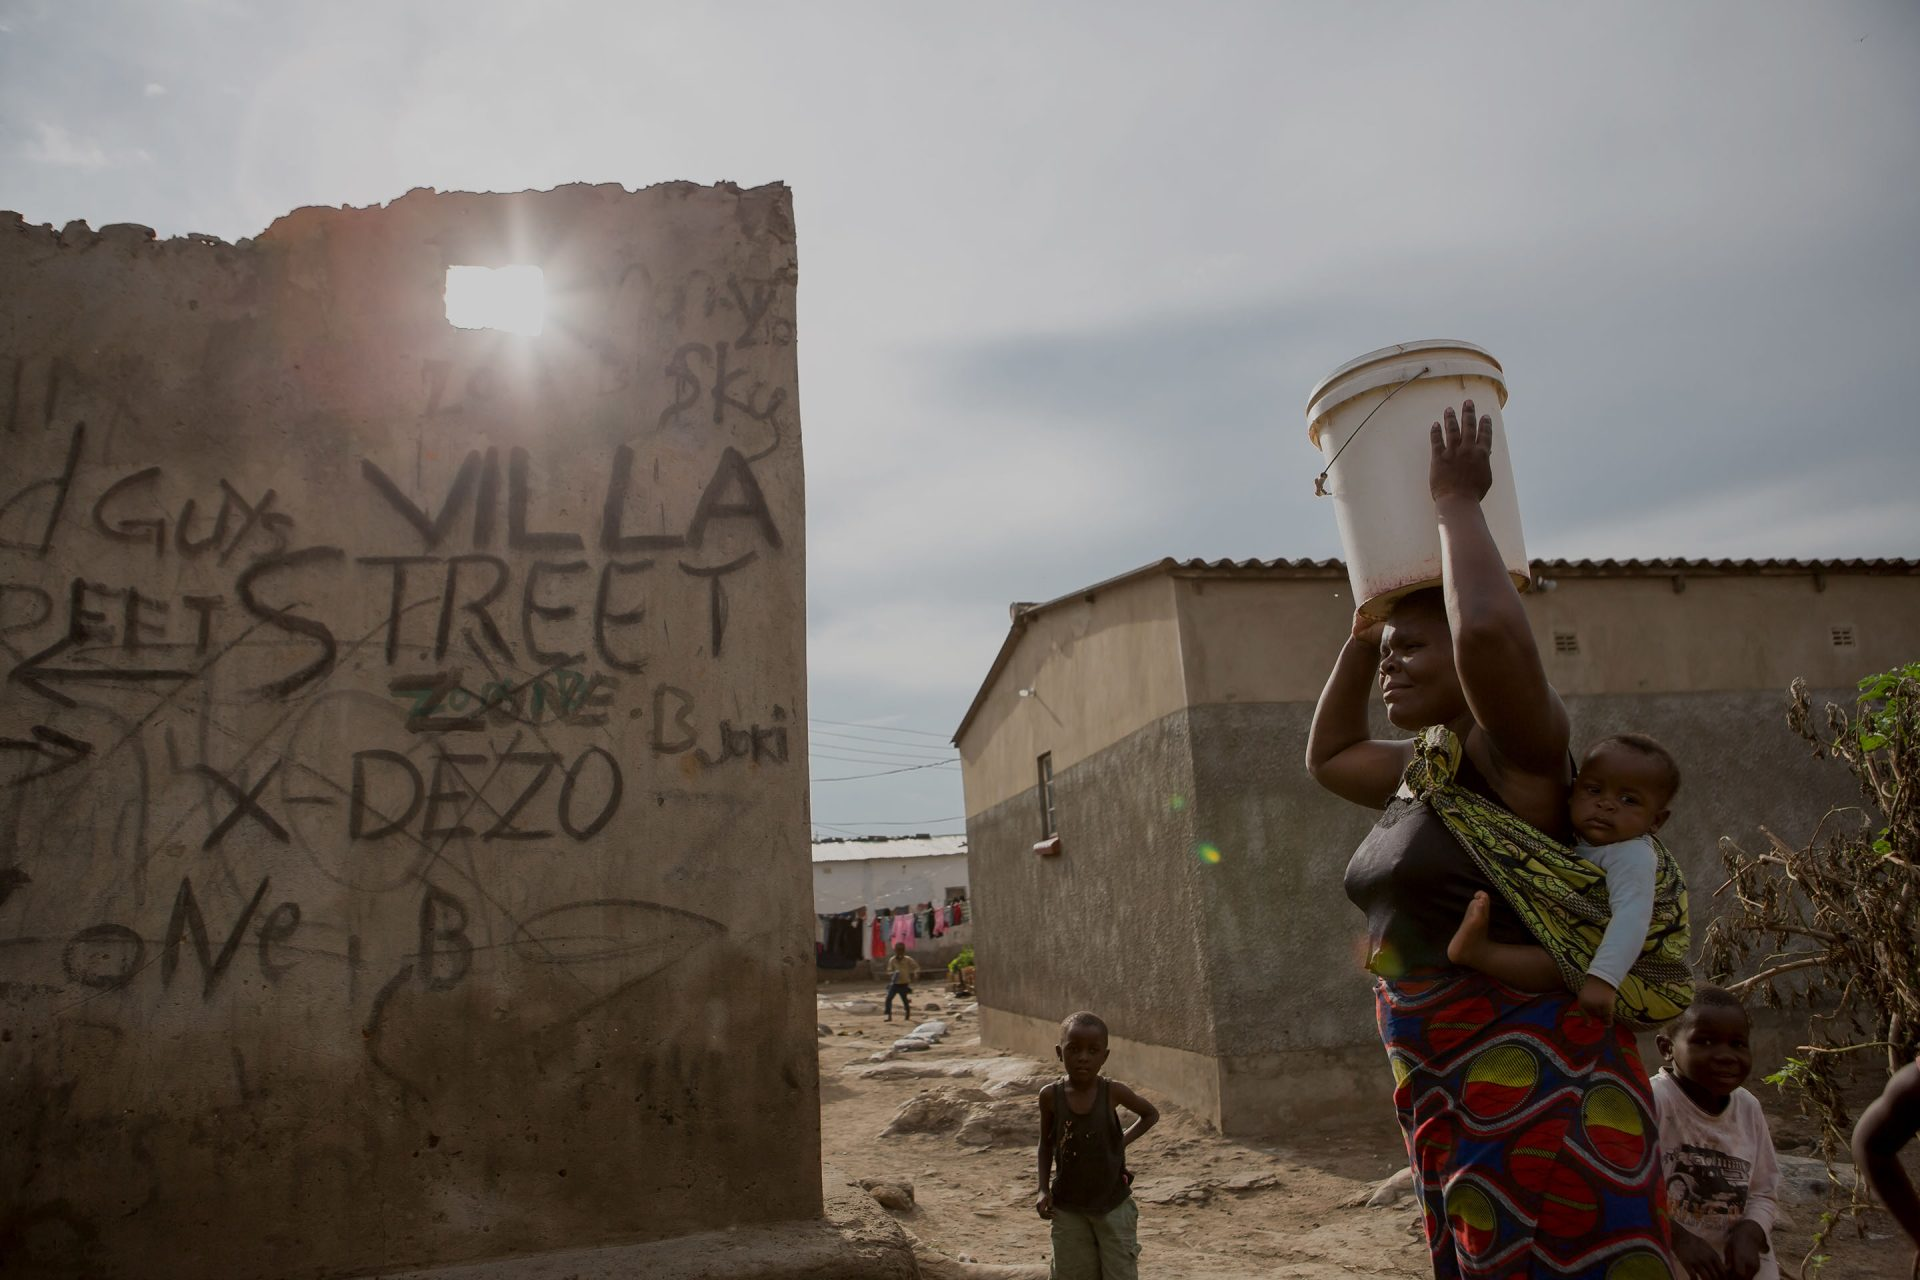 In Lusaka, Zambia, a mother carries water home. Life for women in Zambia can be challenging. They can find it hard to refuse their husbands sex, or to insist their partner use a condom. More than 30% of partnered women aged 15 to 24 in Zambia have experie